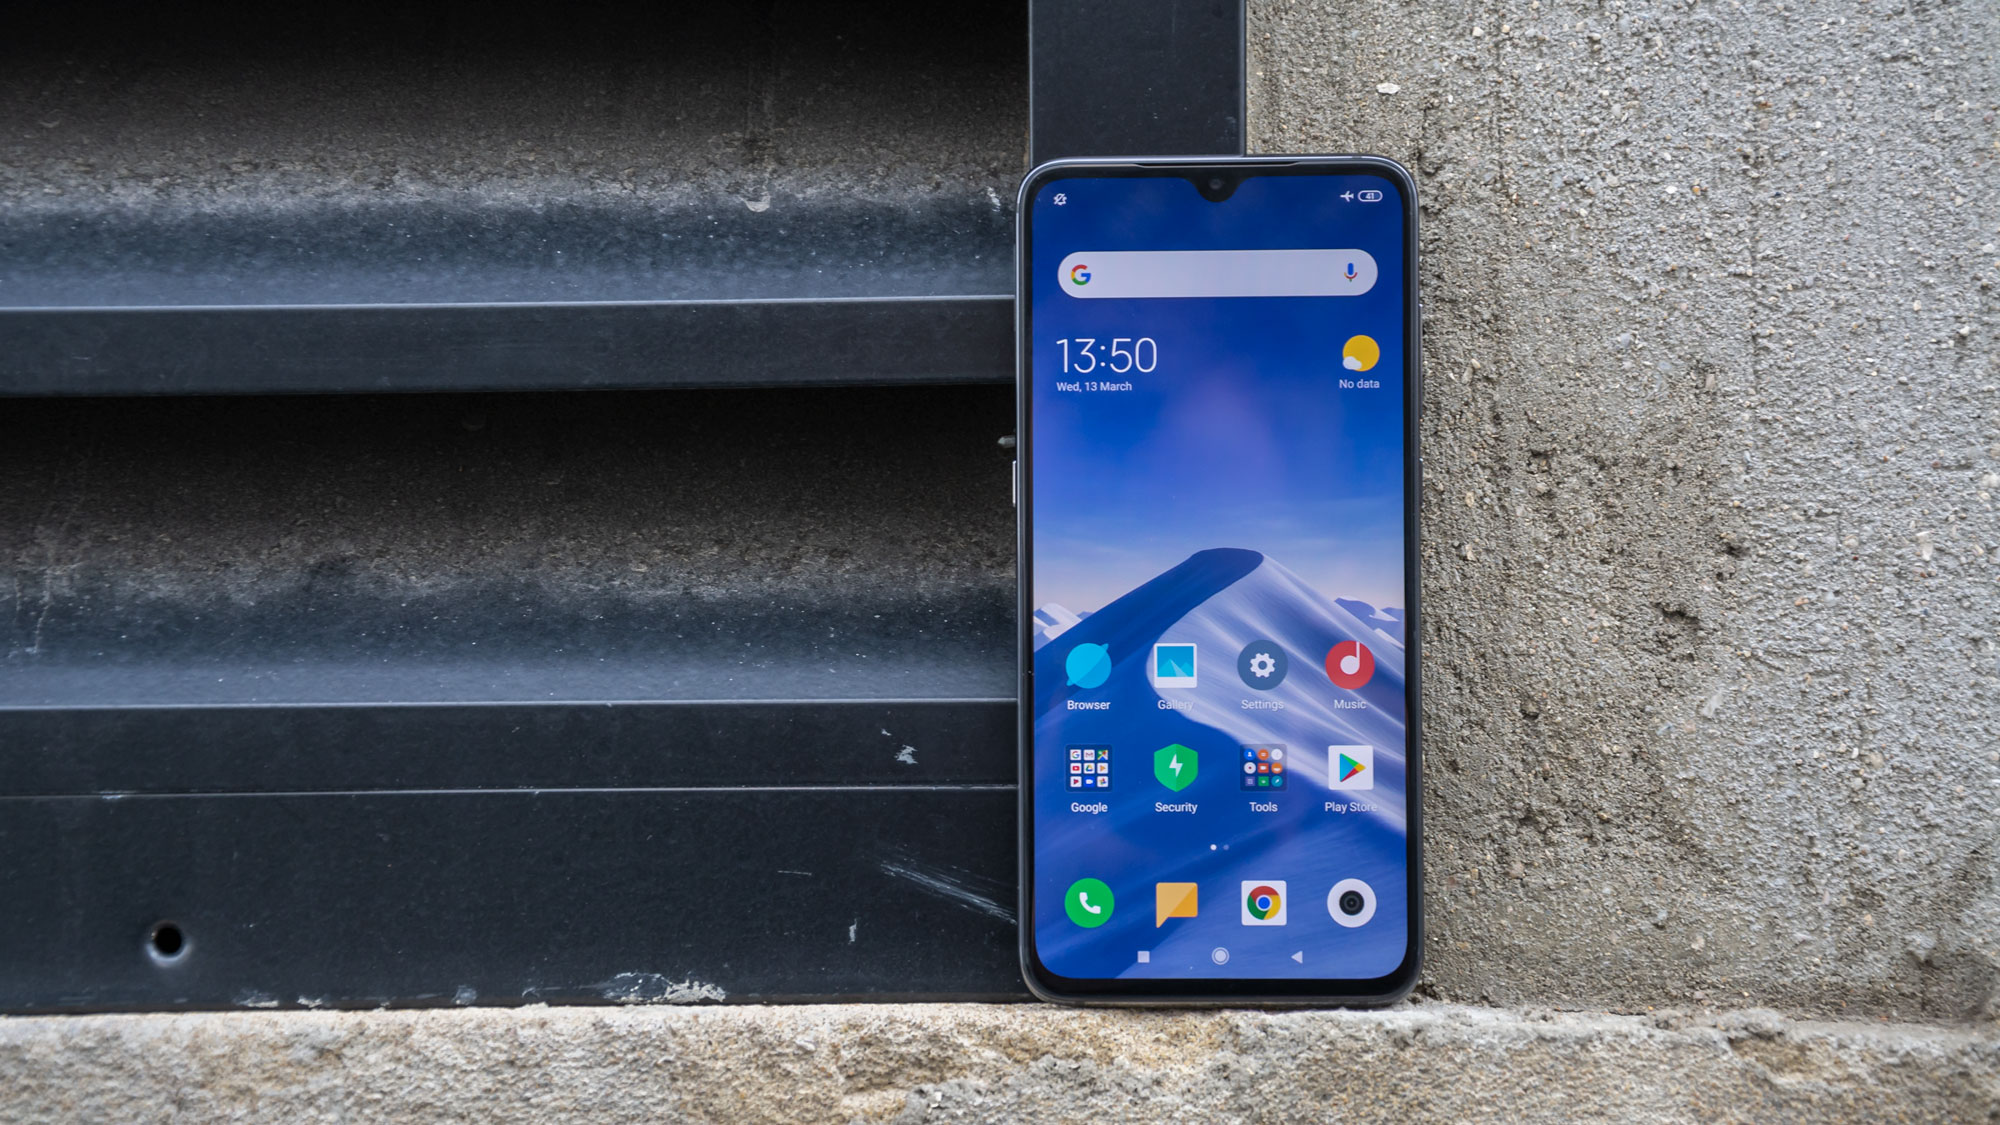 Mi 9 Launched March 30th 2019 in Philippines!